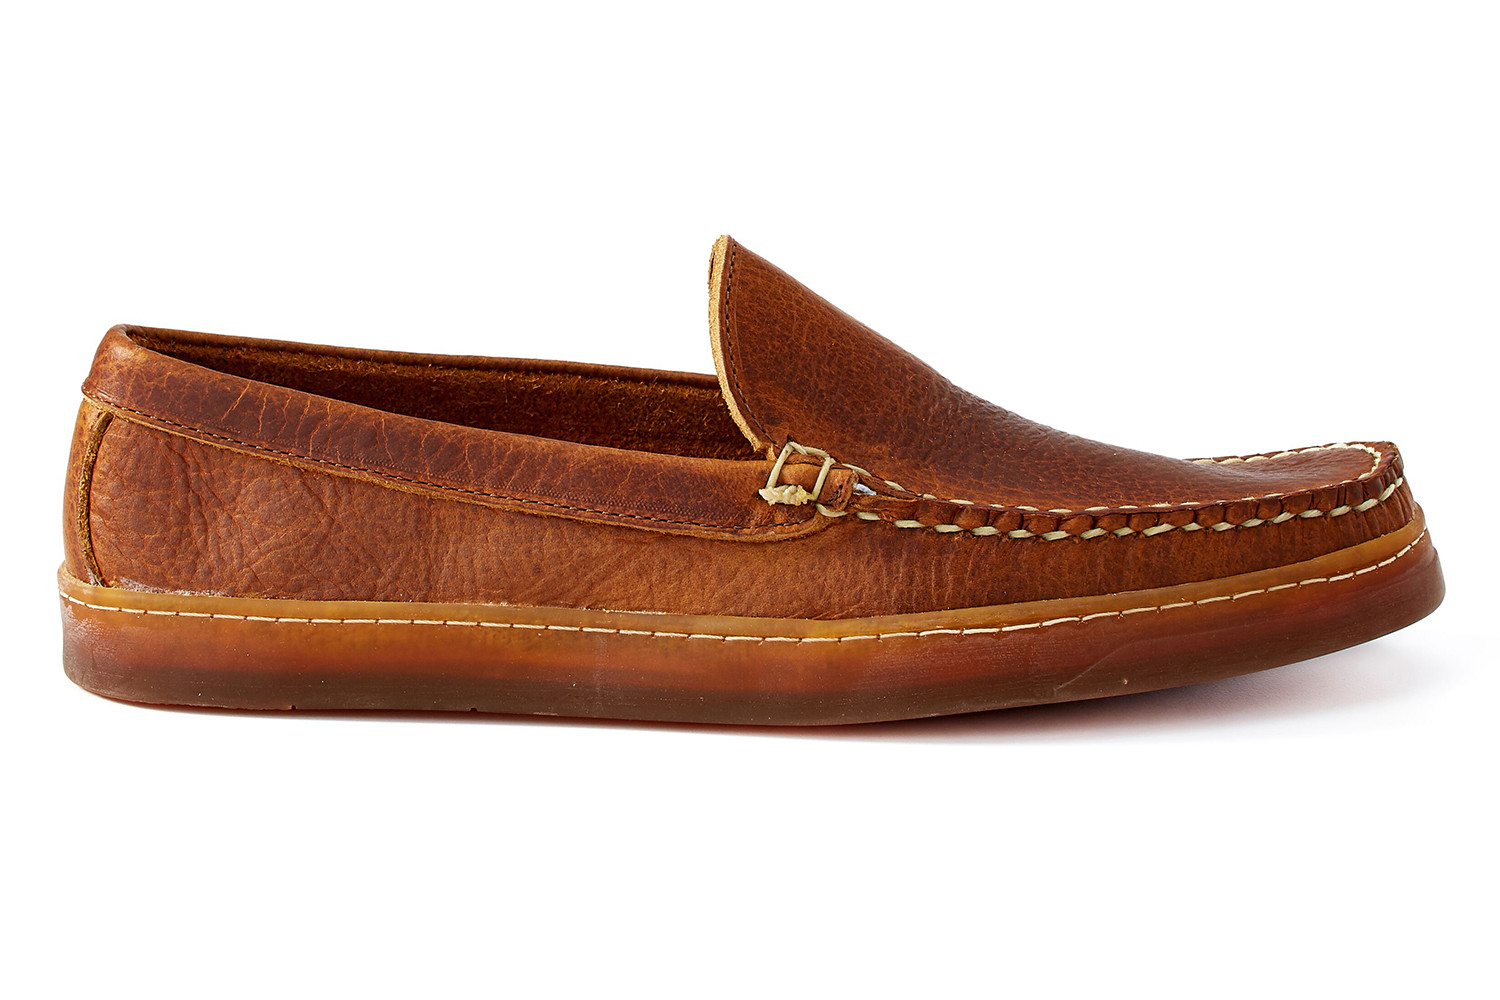 Rancourt Venetian Loafer in Toast Rushmore